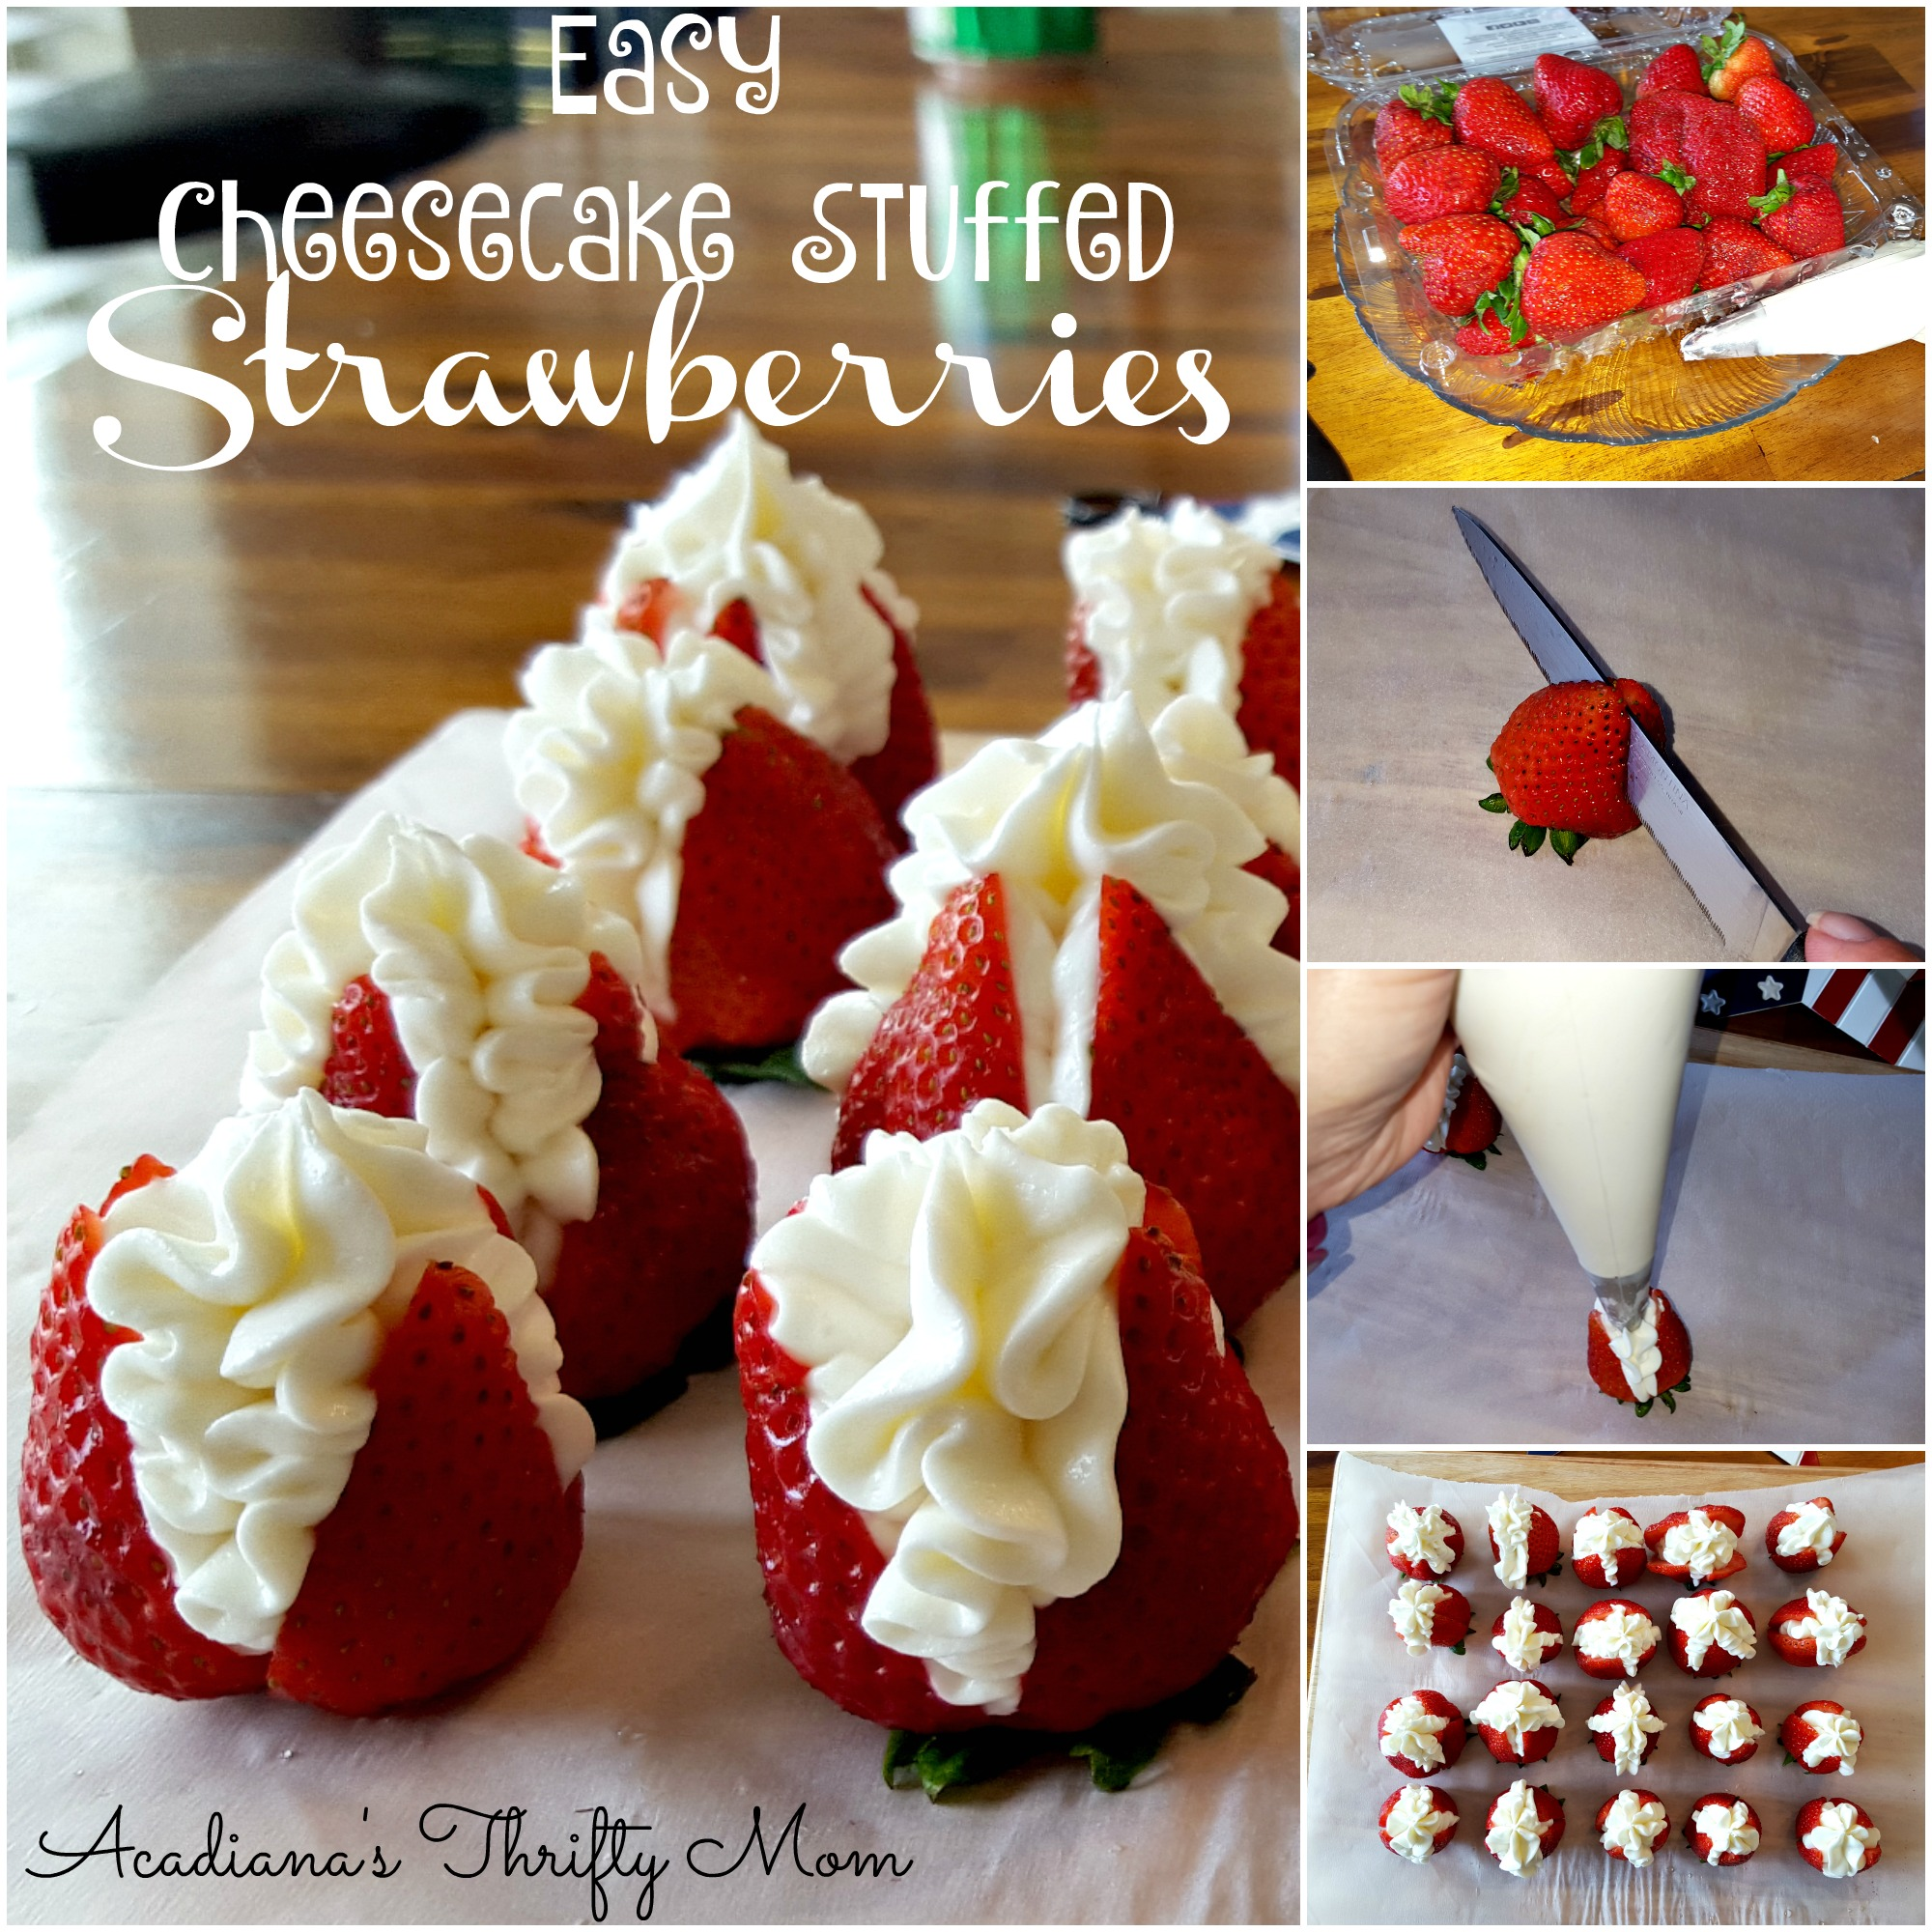 Easy Cheesecake Stuffed Strawberries